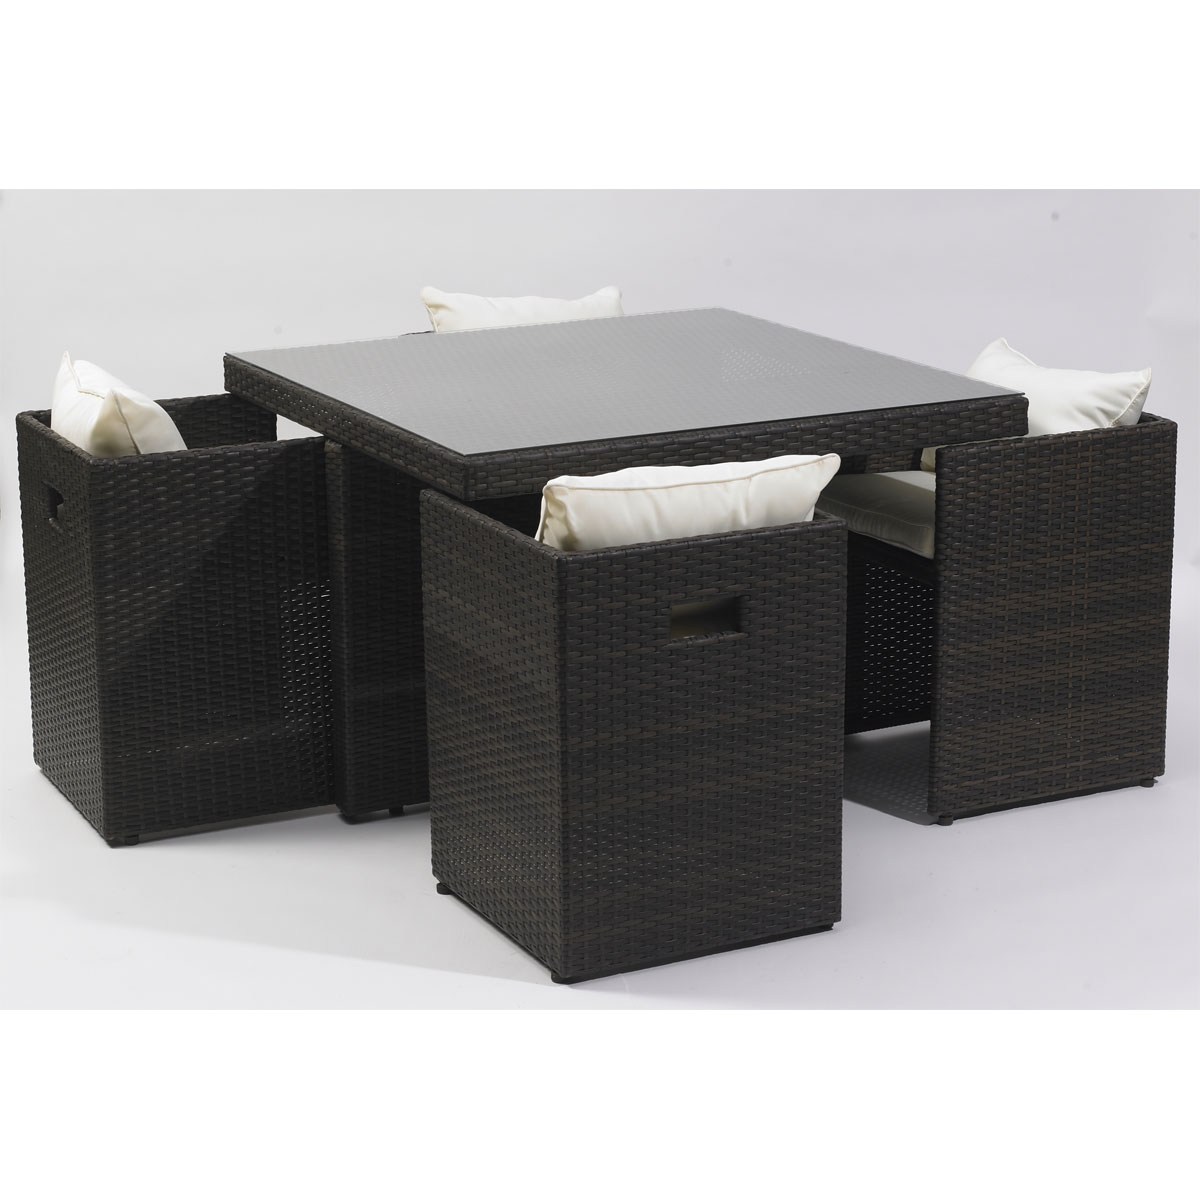 salon de jardin pour balcon pas cher id es de d coration. Black Bedroom Furniture Sets. Home Design Ideas